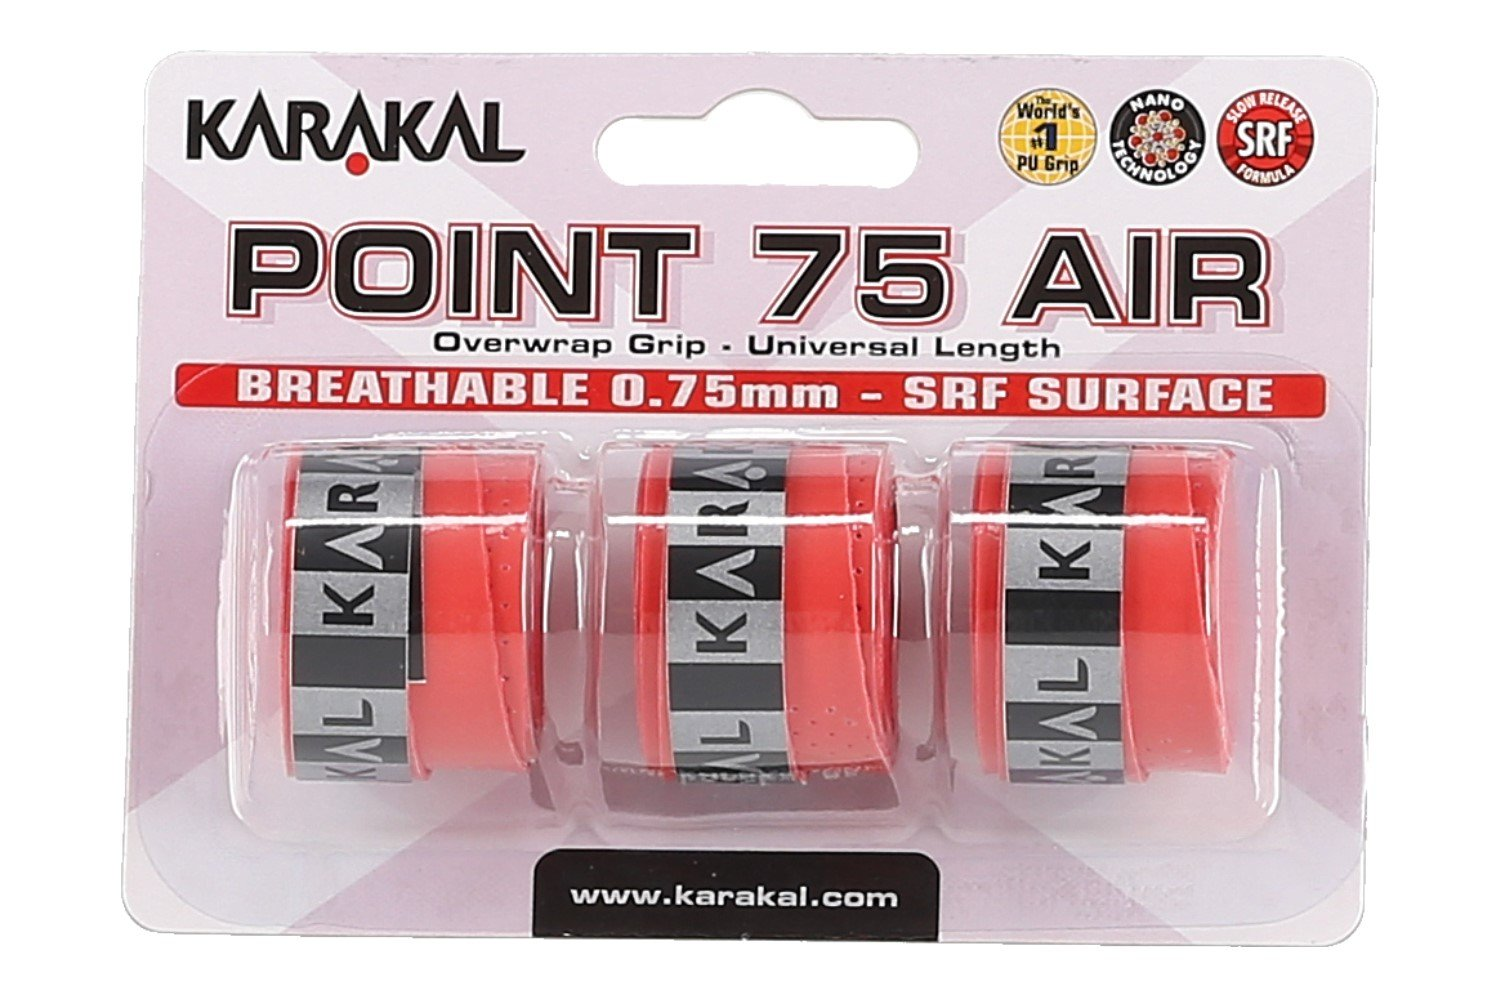 Karakal Point Air 75 Overgrip 3er rot